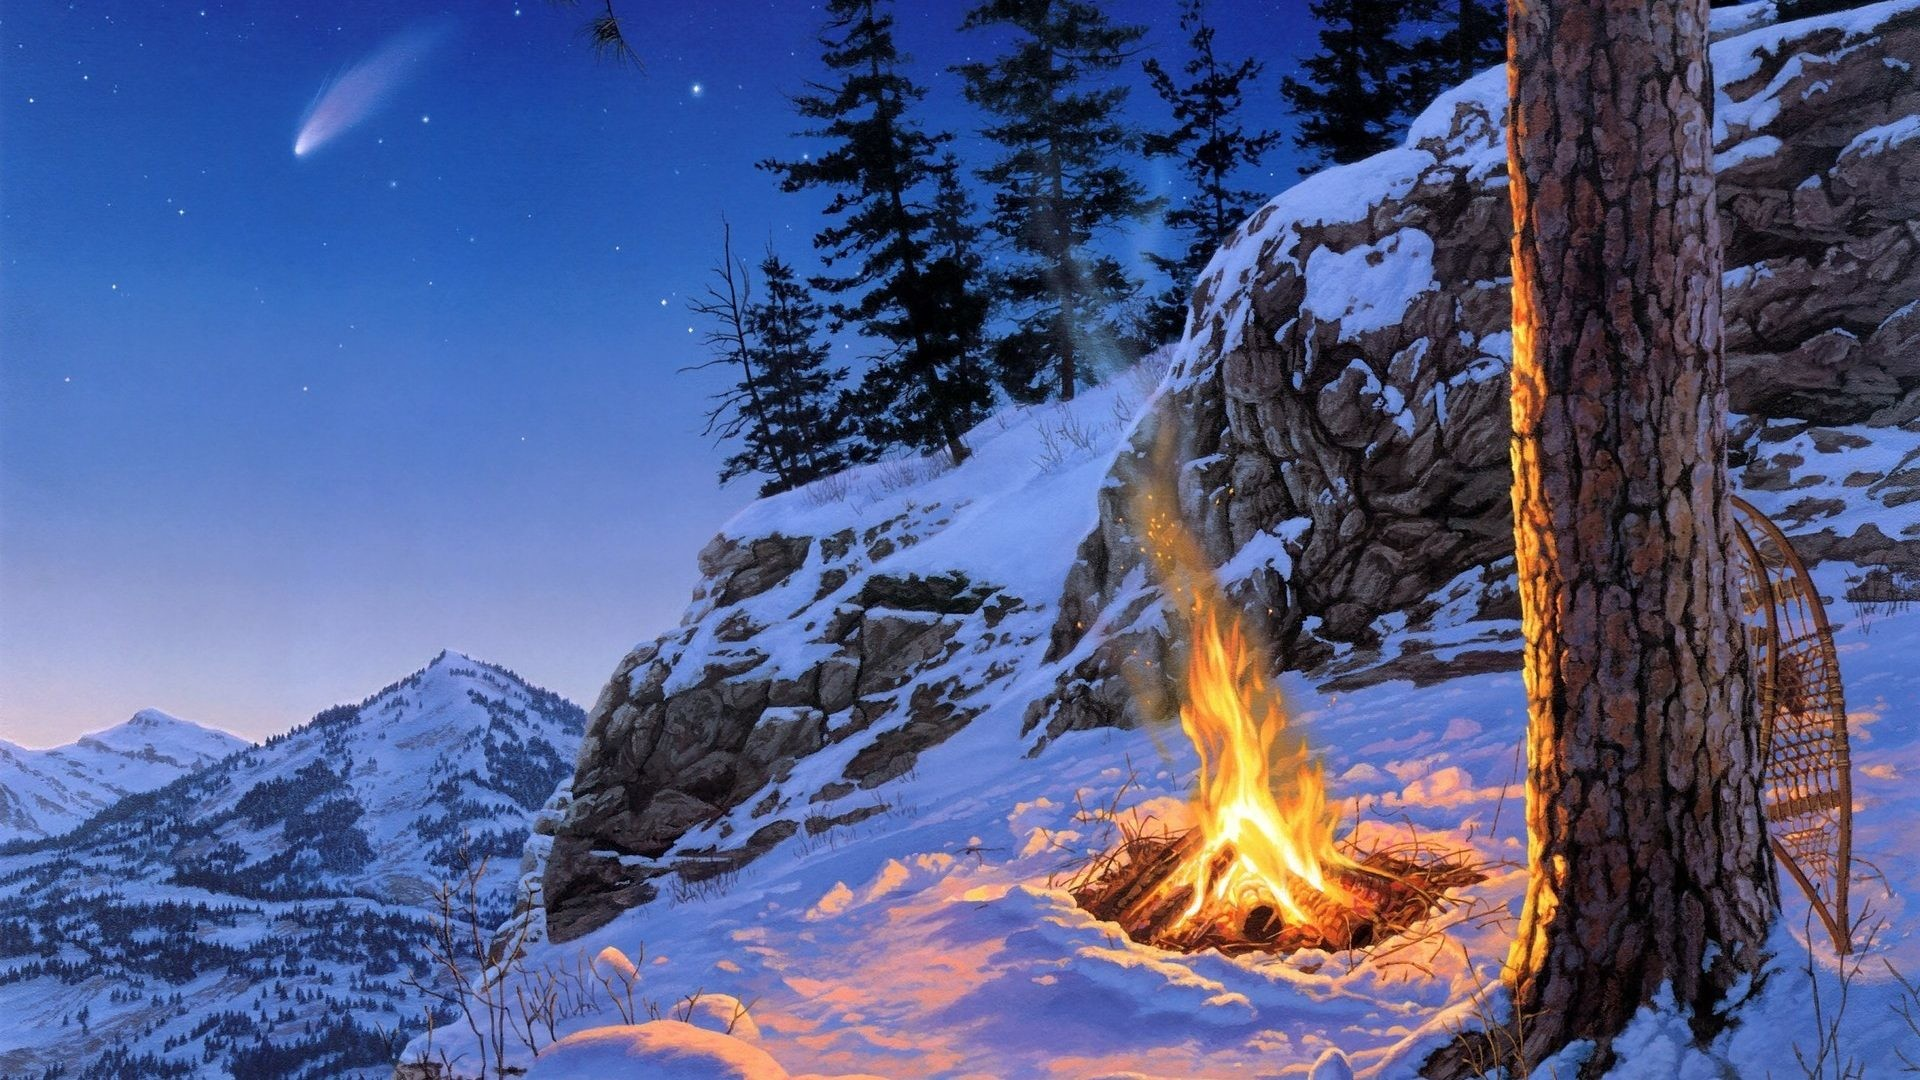 Free Mountain And Winter Wallpapers Hd: Winter Scenic Wallpaper (60+ Images